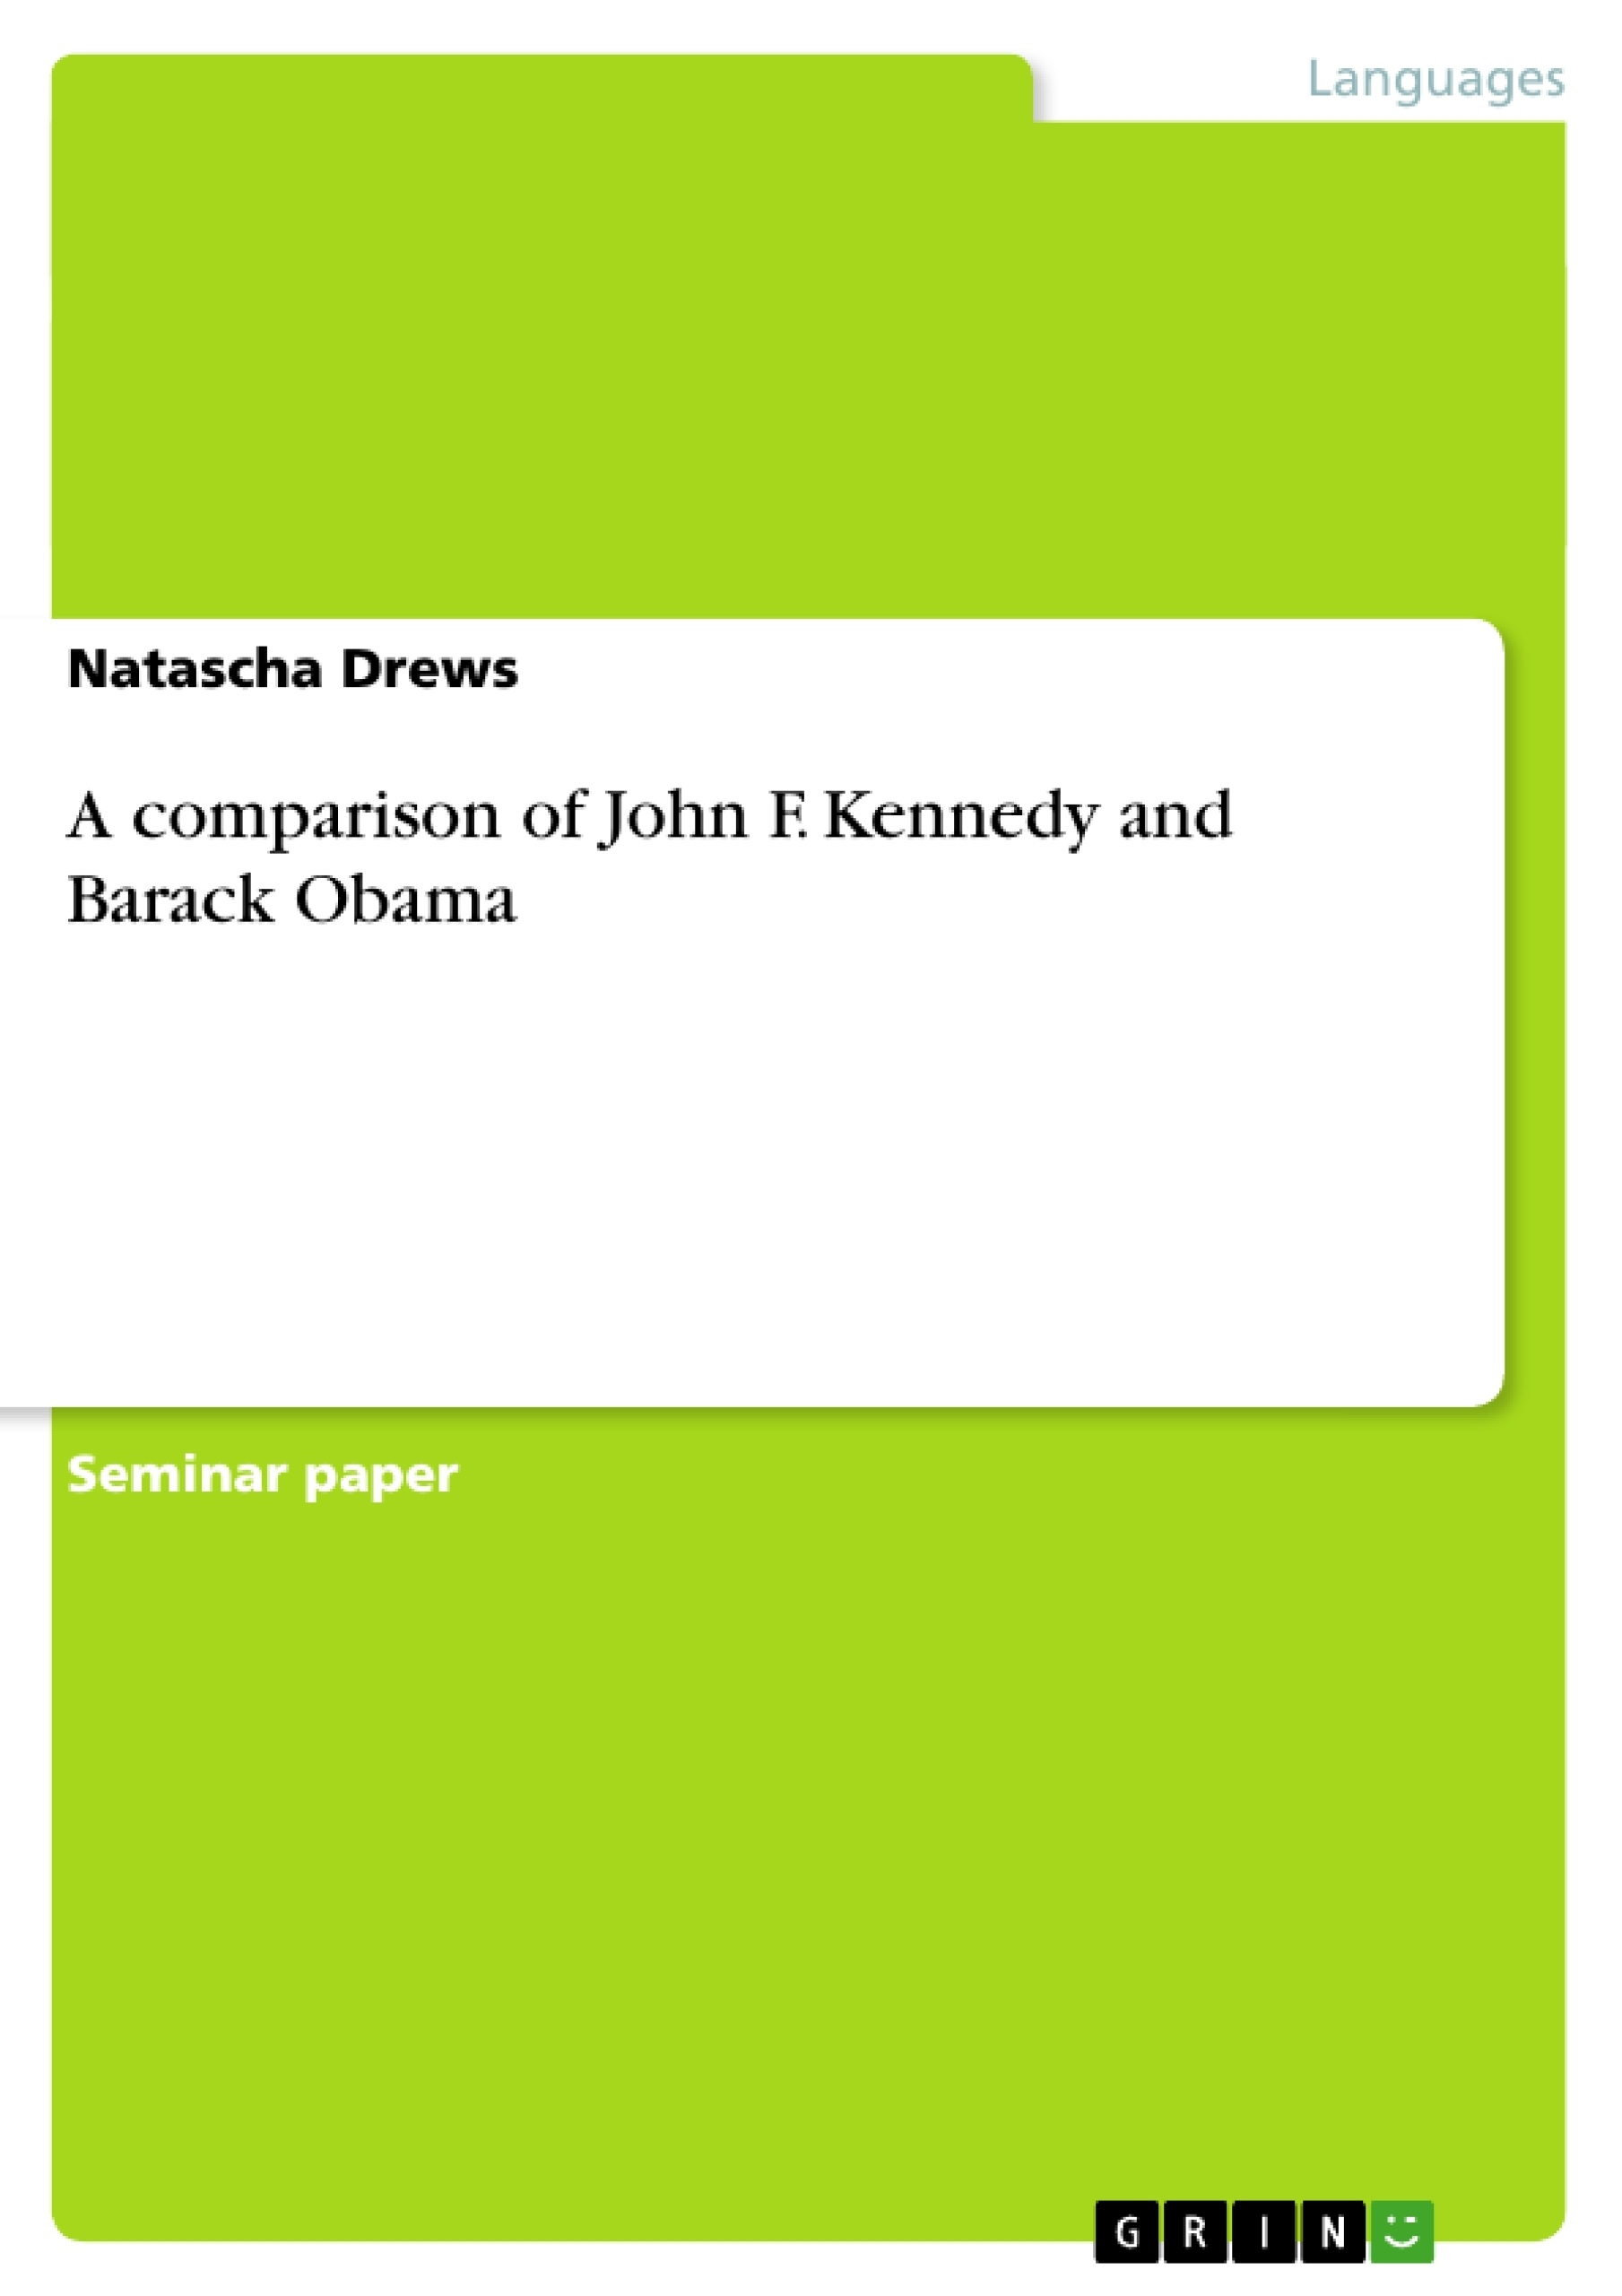 Title: A comparison of John F. Kennedy and Barack Obama